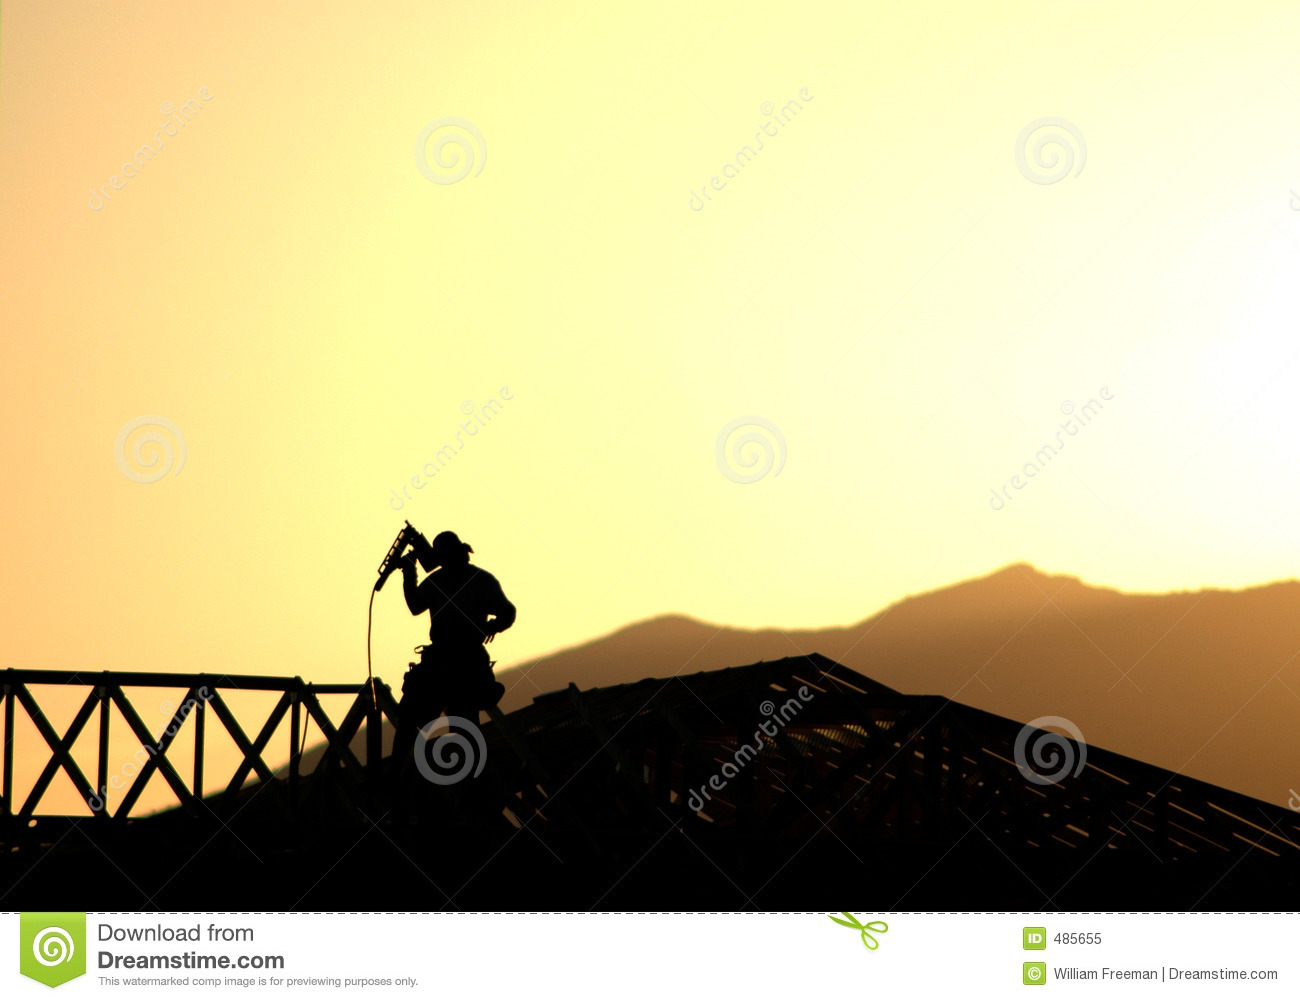 Royalty Free Stock Photo Construction Worker Silhouette Image485655 on air nailer